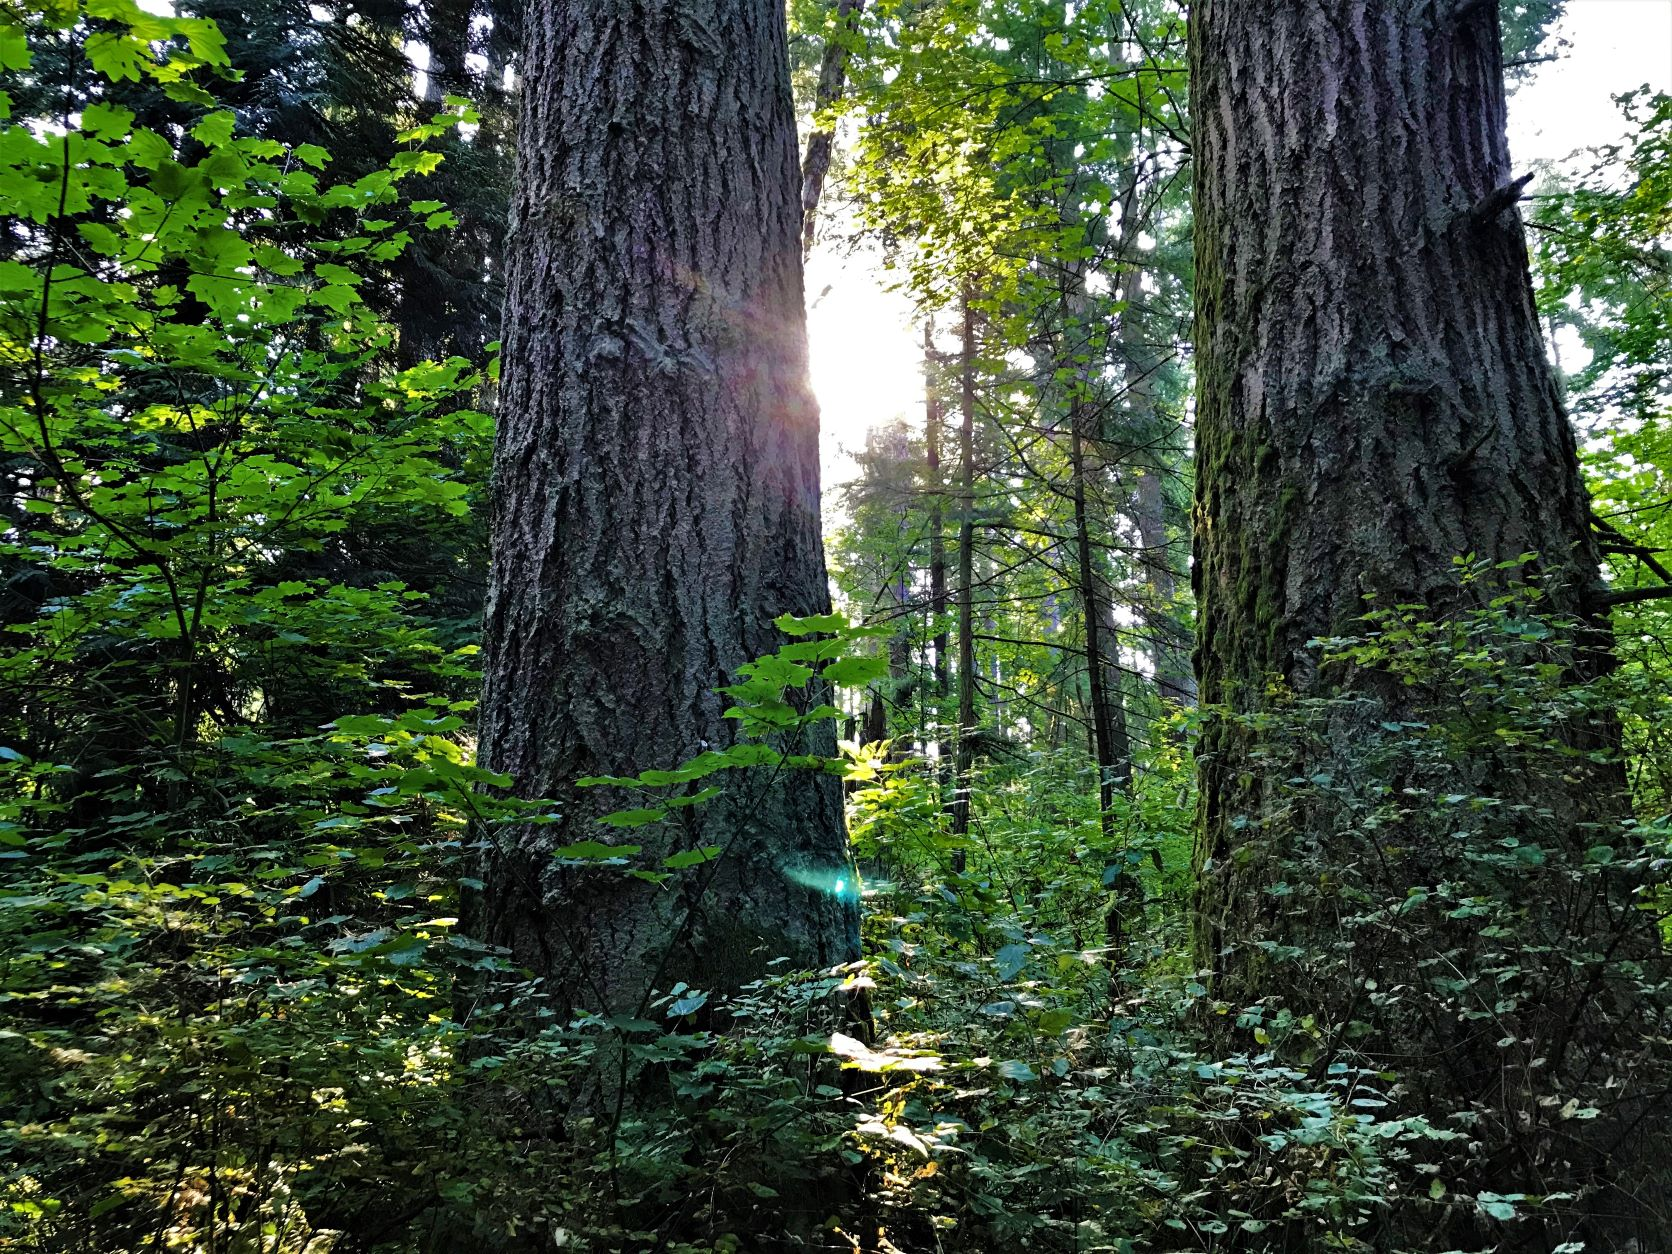 """An example of BC's endangered Coastal Douglas-fir zone, Sunnyside Acres Urban Forest represents just one of Surrey's many mature forest parks and biodiversity """"hubs""""."""